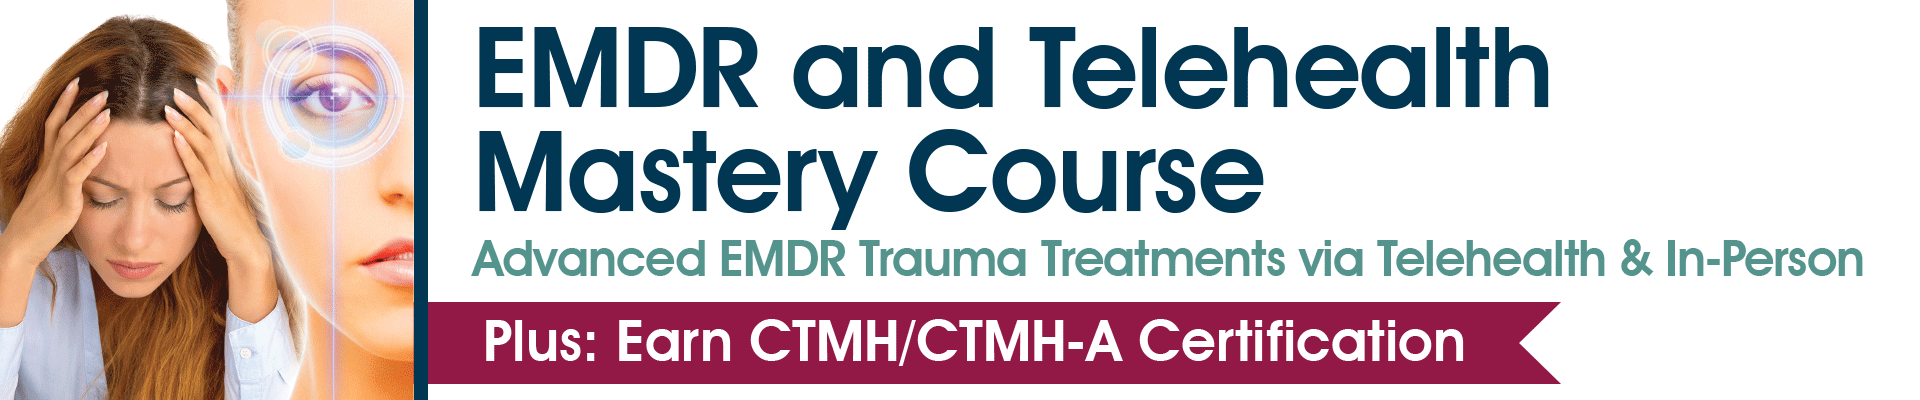 EMDR Telehealth CE Training